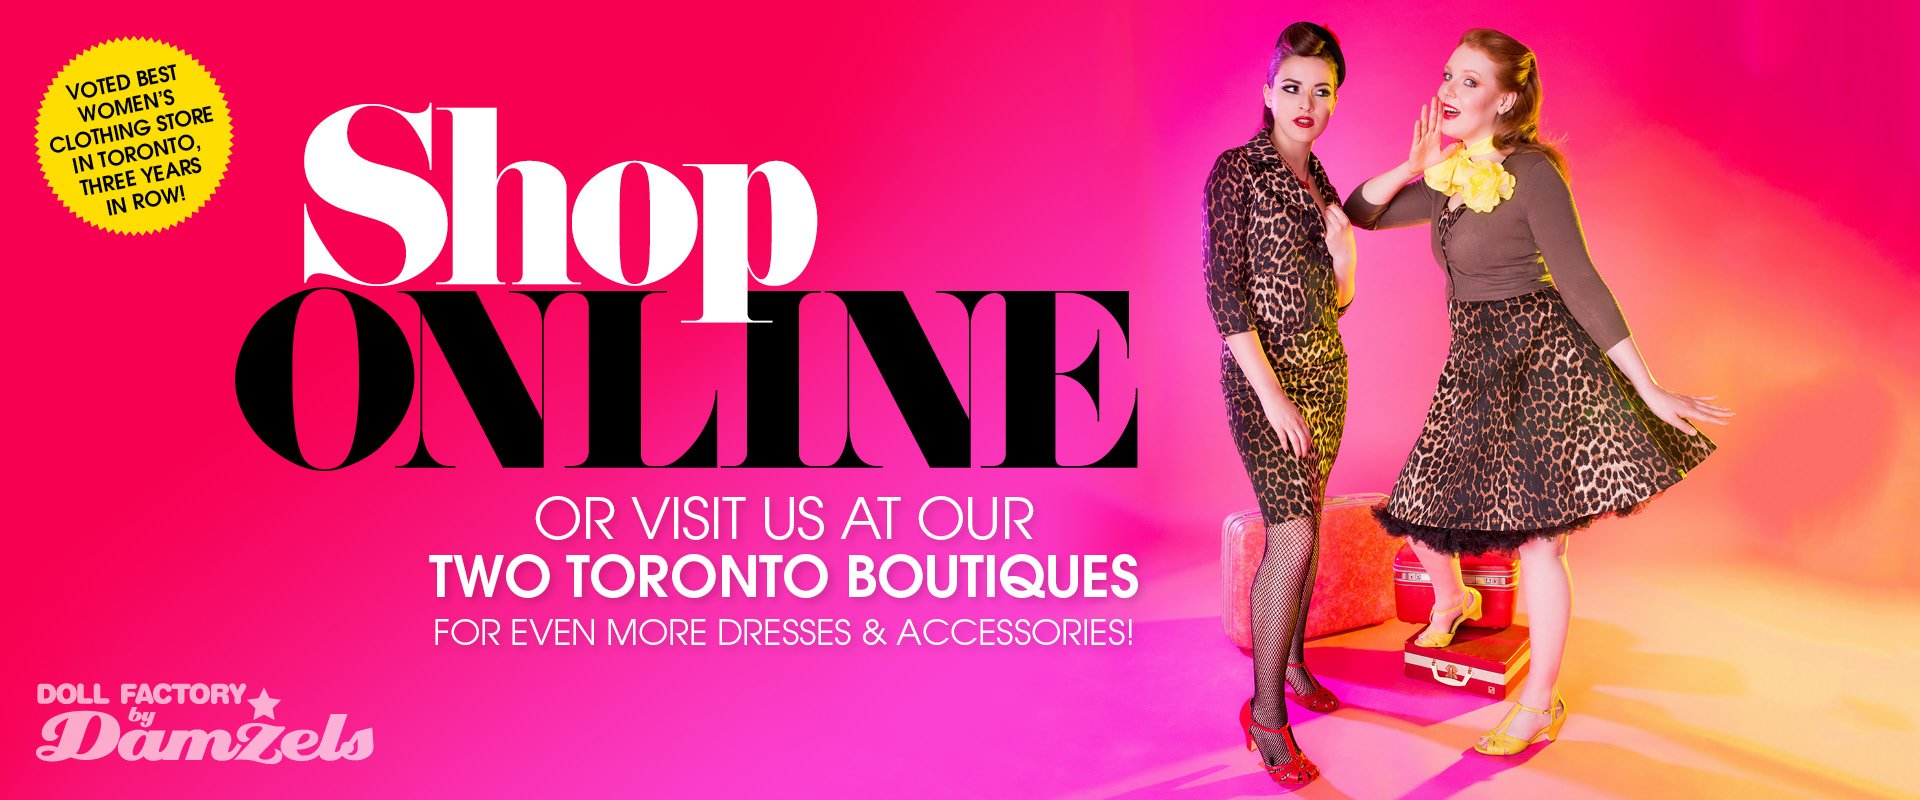 fdb2aba3b1e8 Best Stores To Buy Dresses In Toronto - raveitsafe